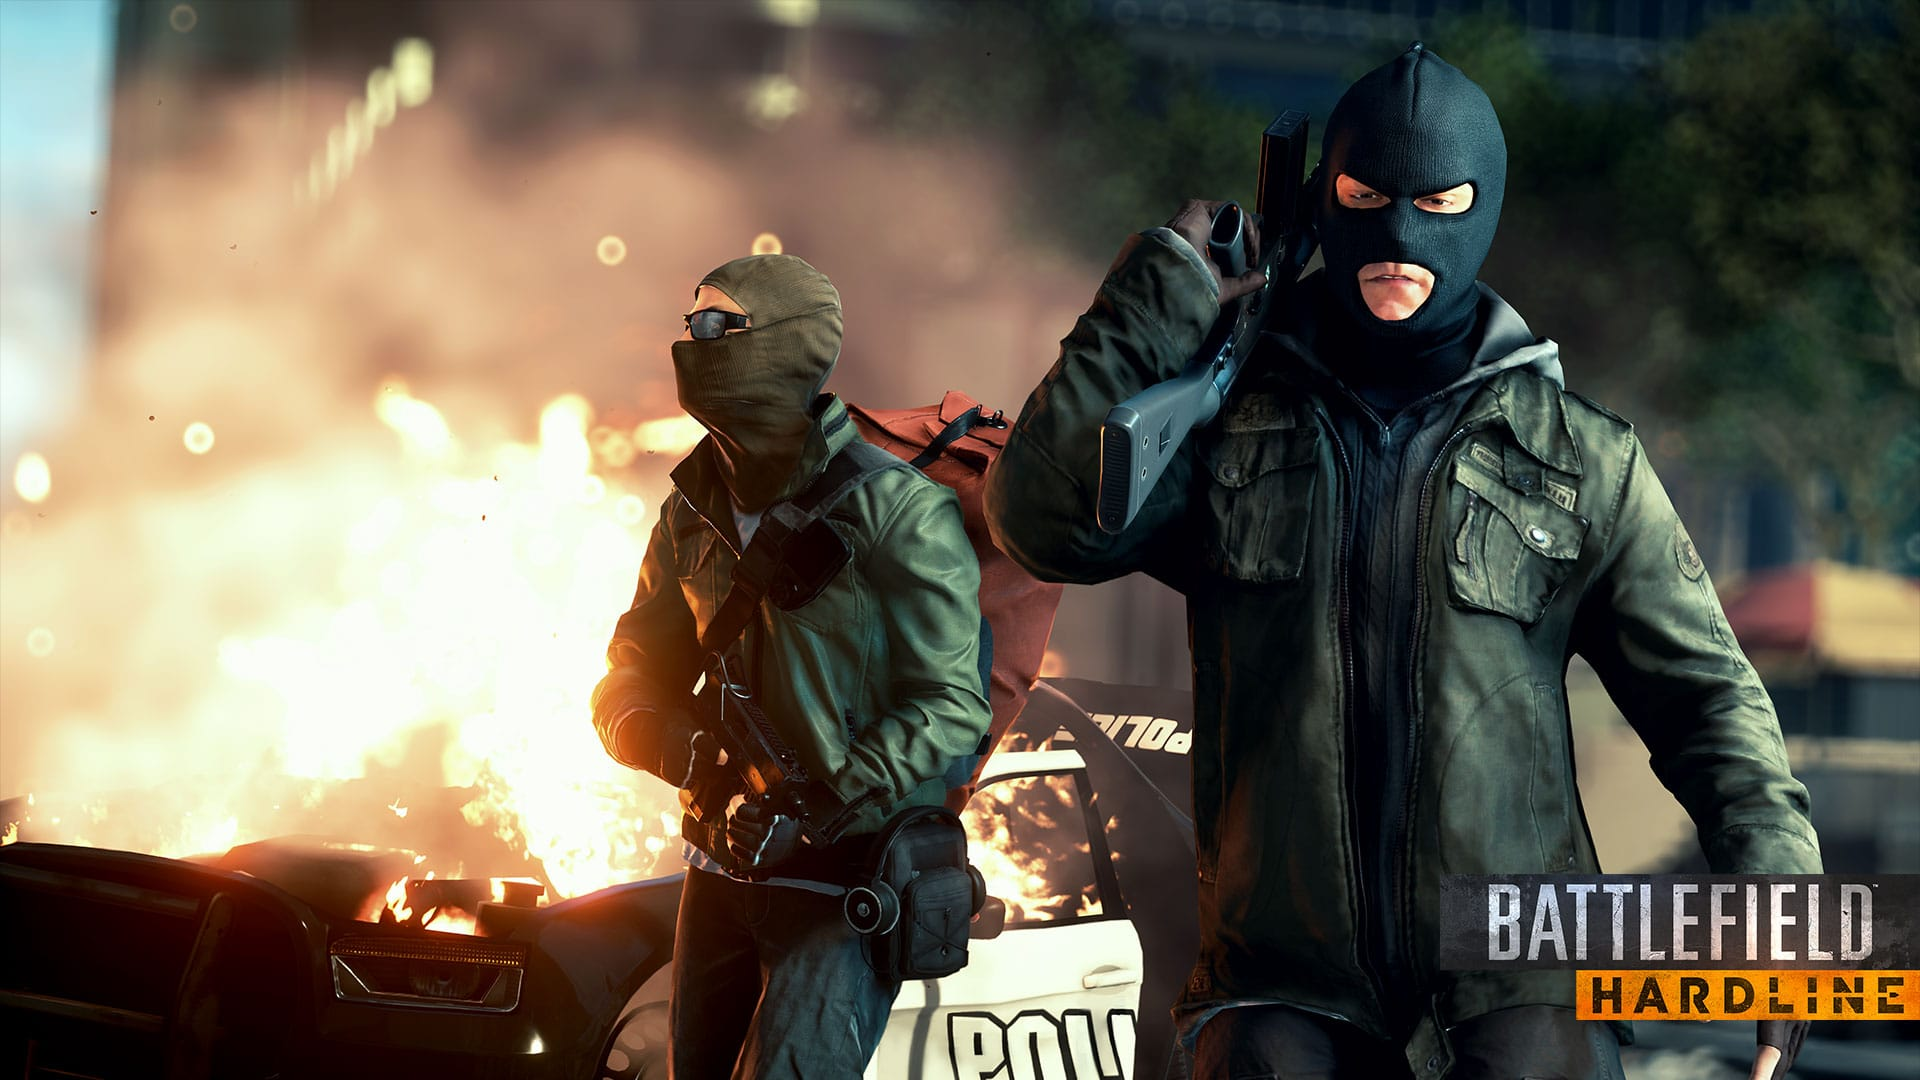 Battlefield Hardline - Criminals Close up